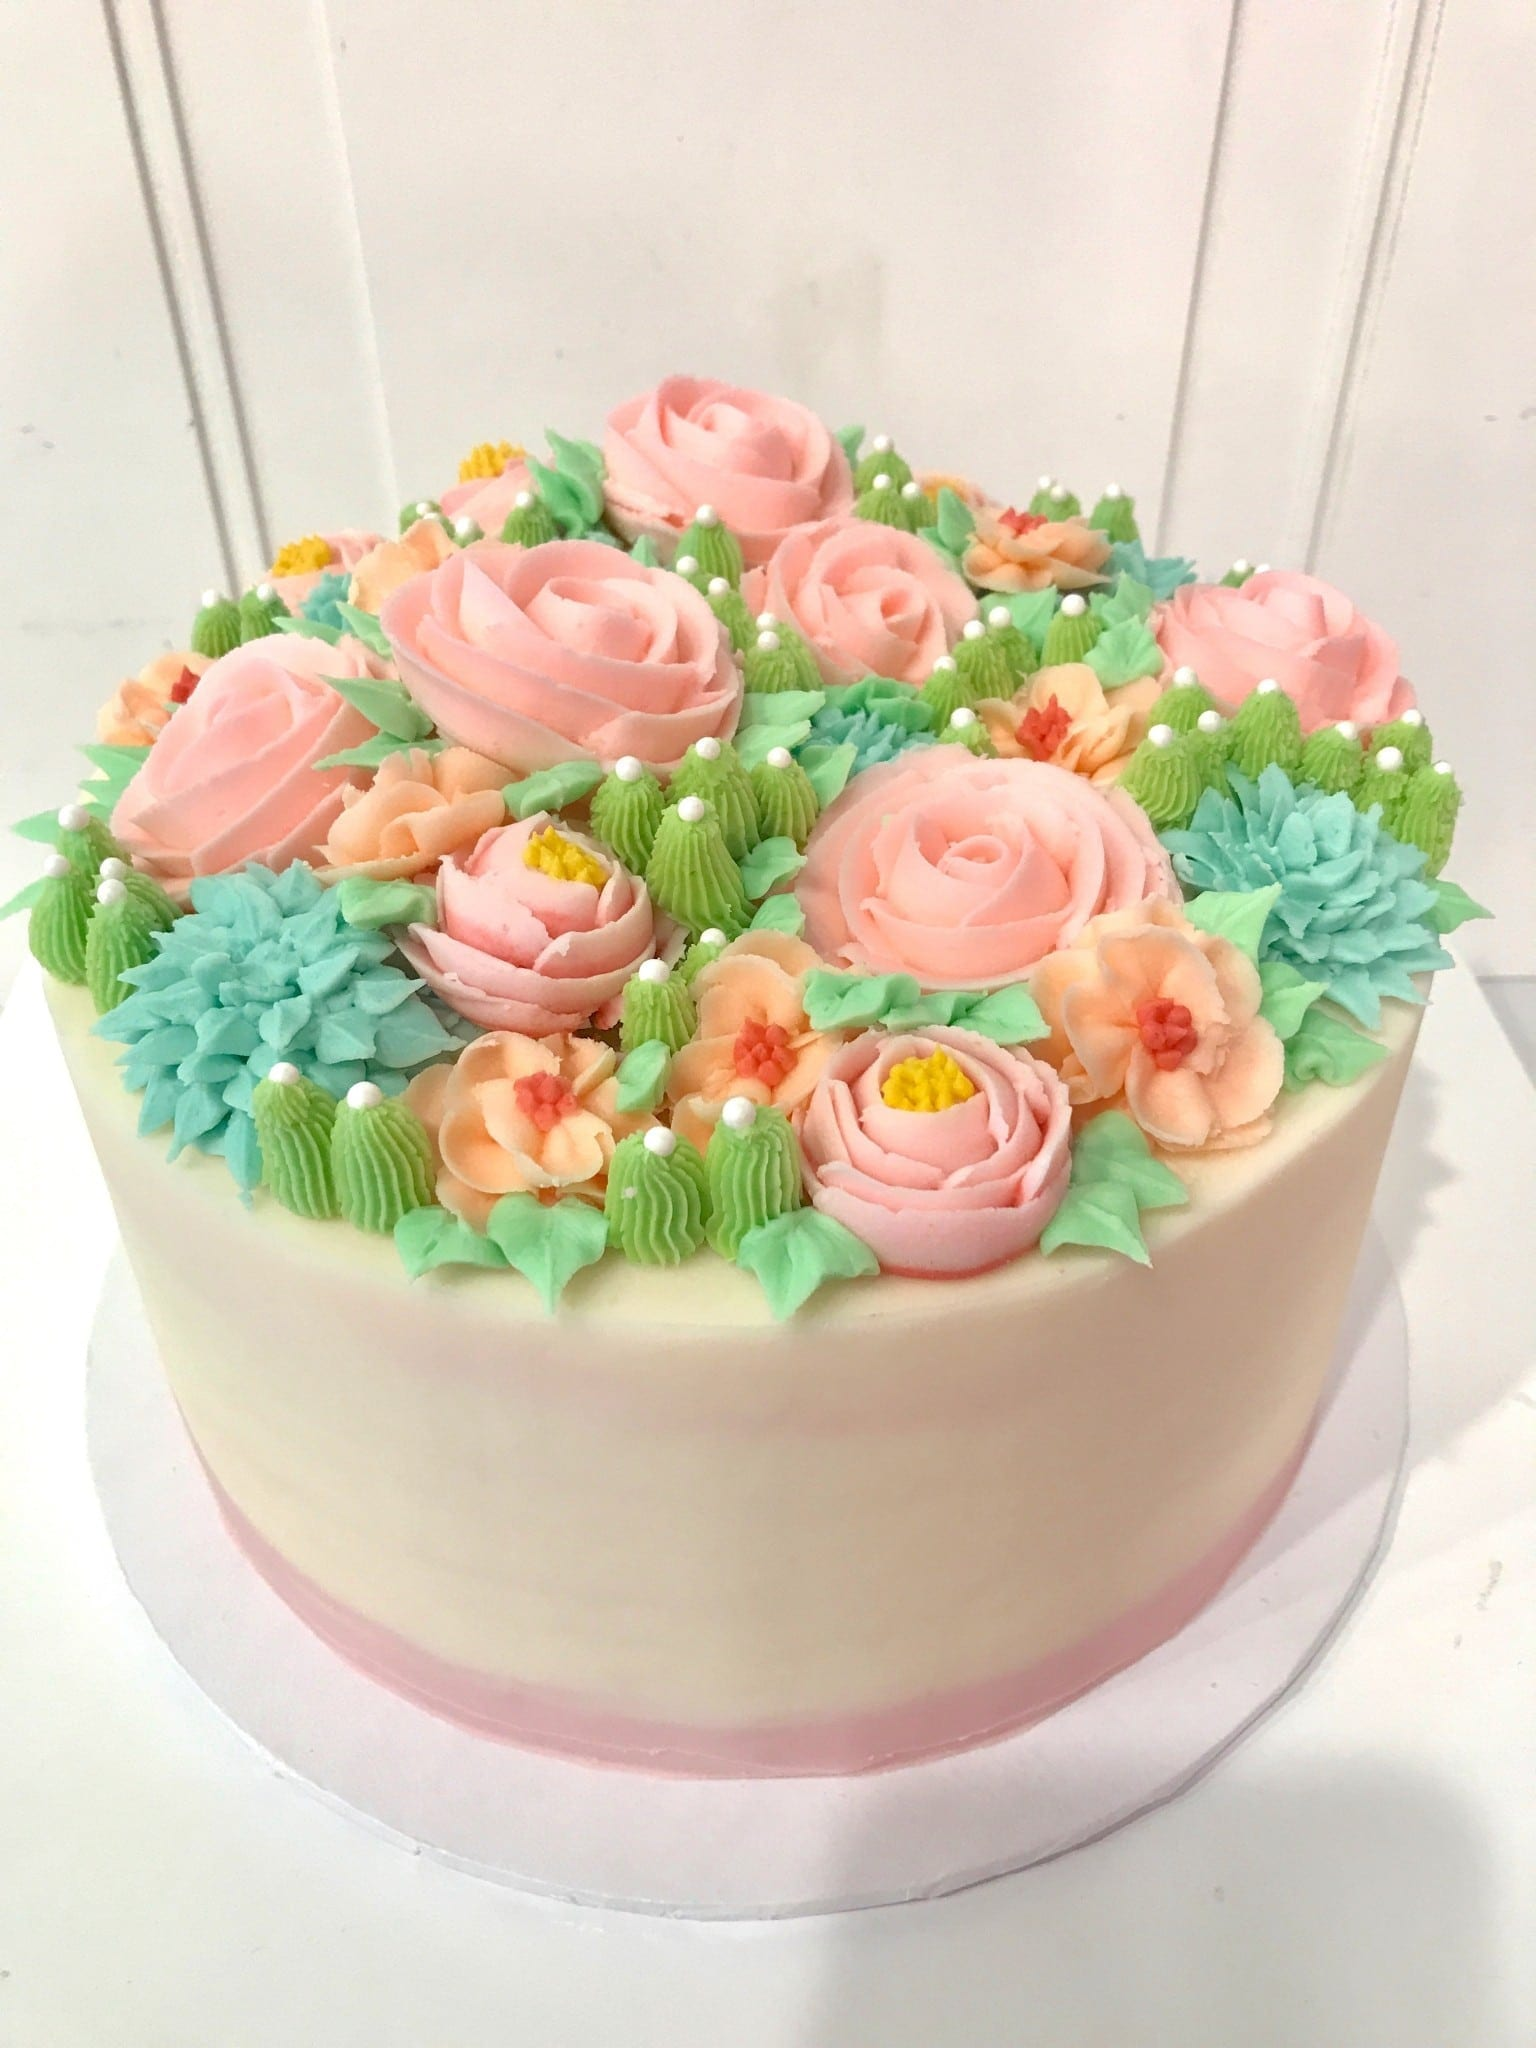 Buttercream Flower and Succulent Cake | 3 Sweet Girls Cakery